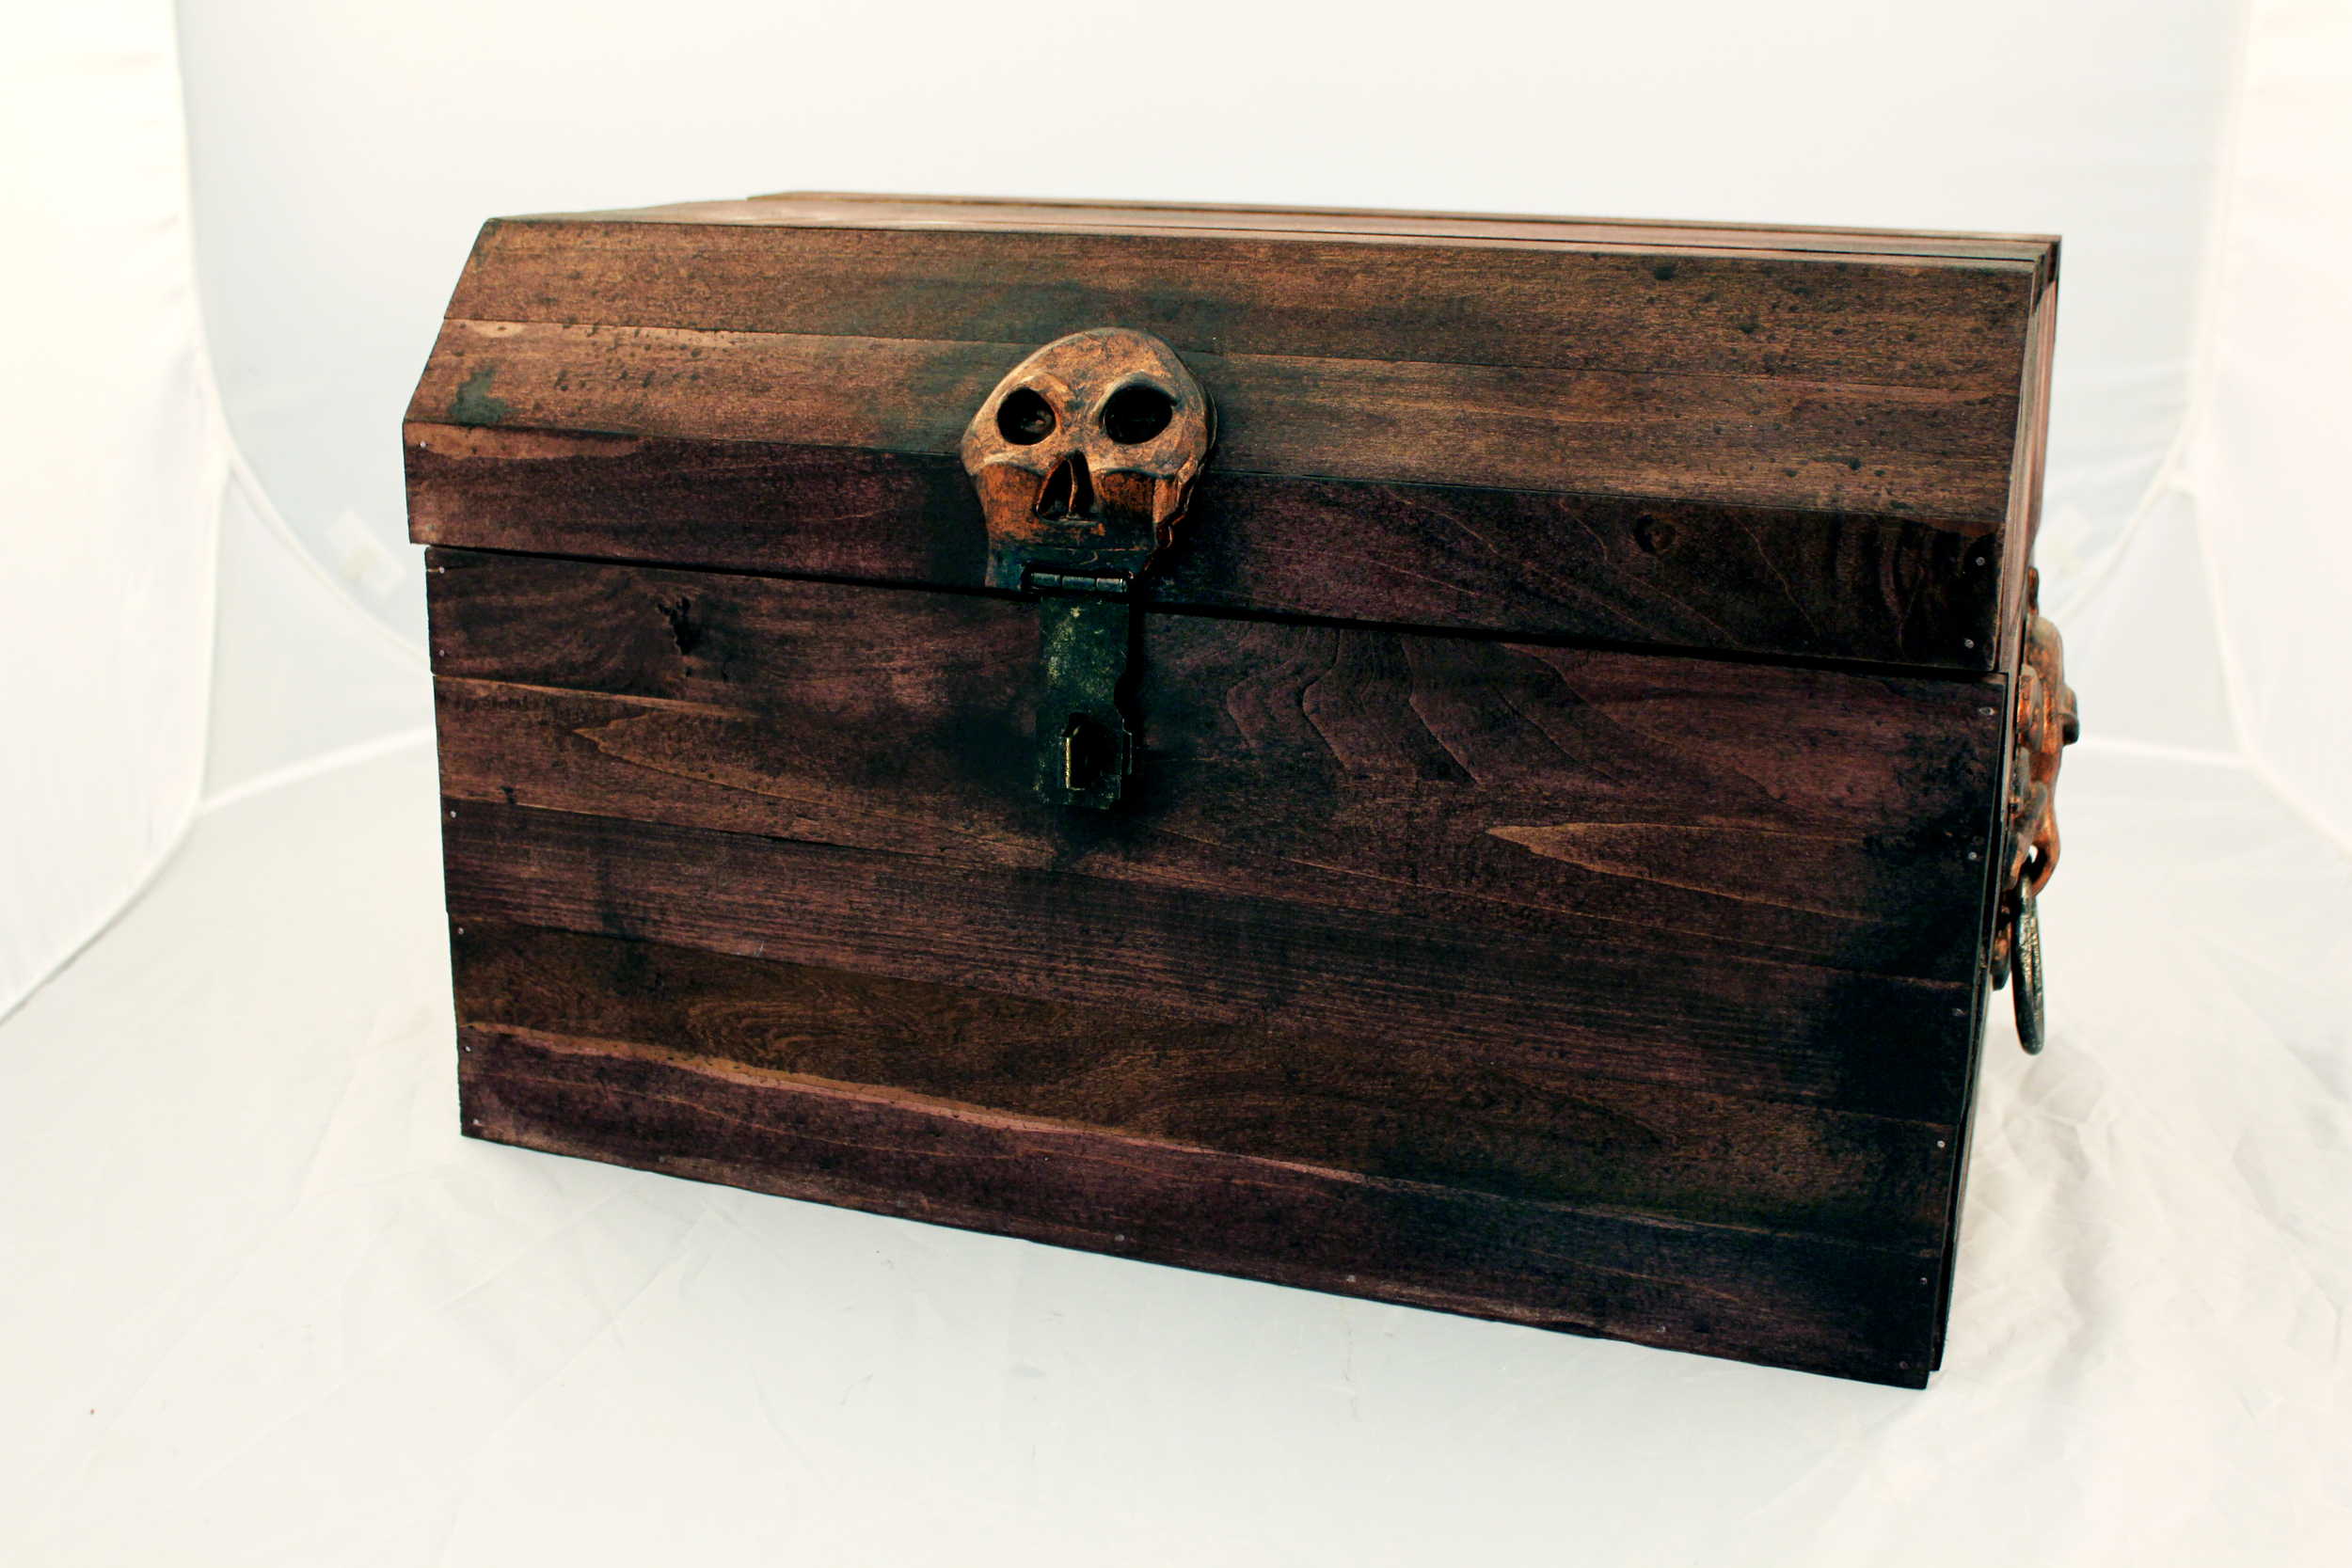 Pirate Chest (2015)